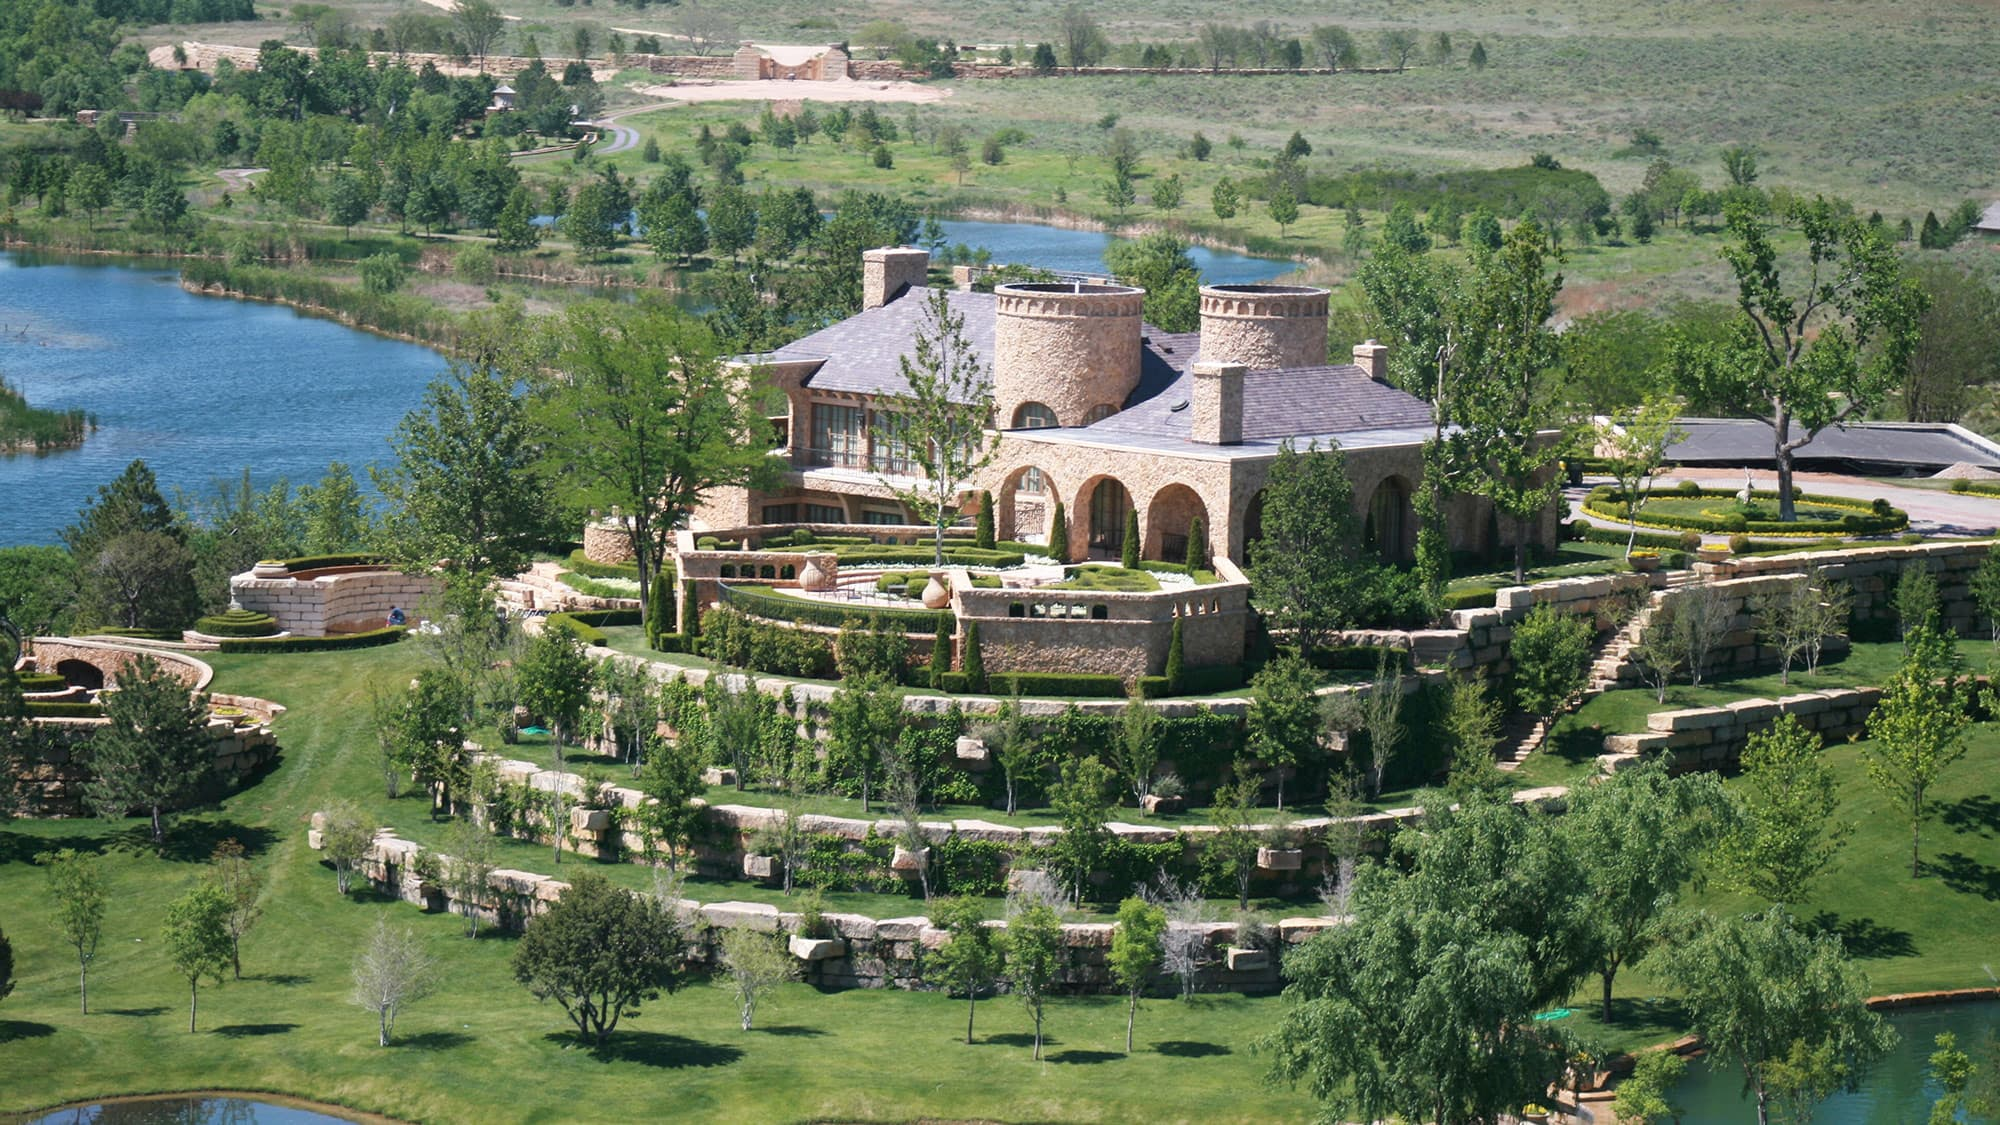 For sale: Boone Pickens' $250 million ranch  Take a look inside